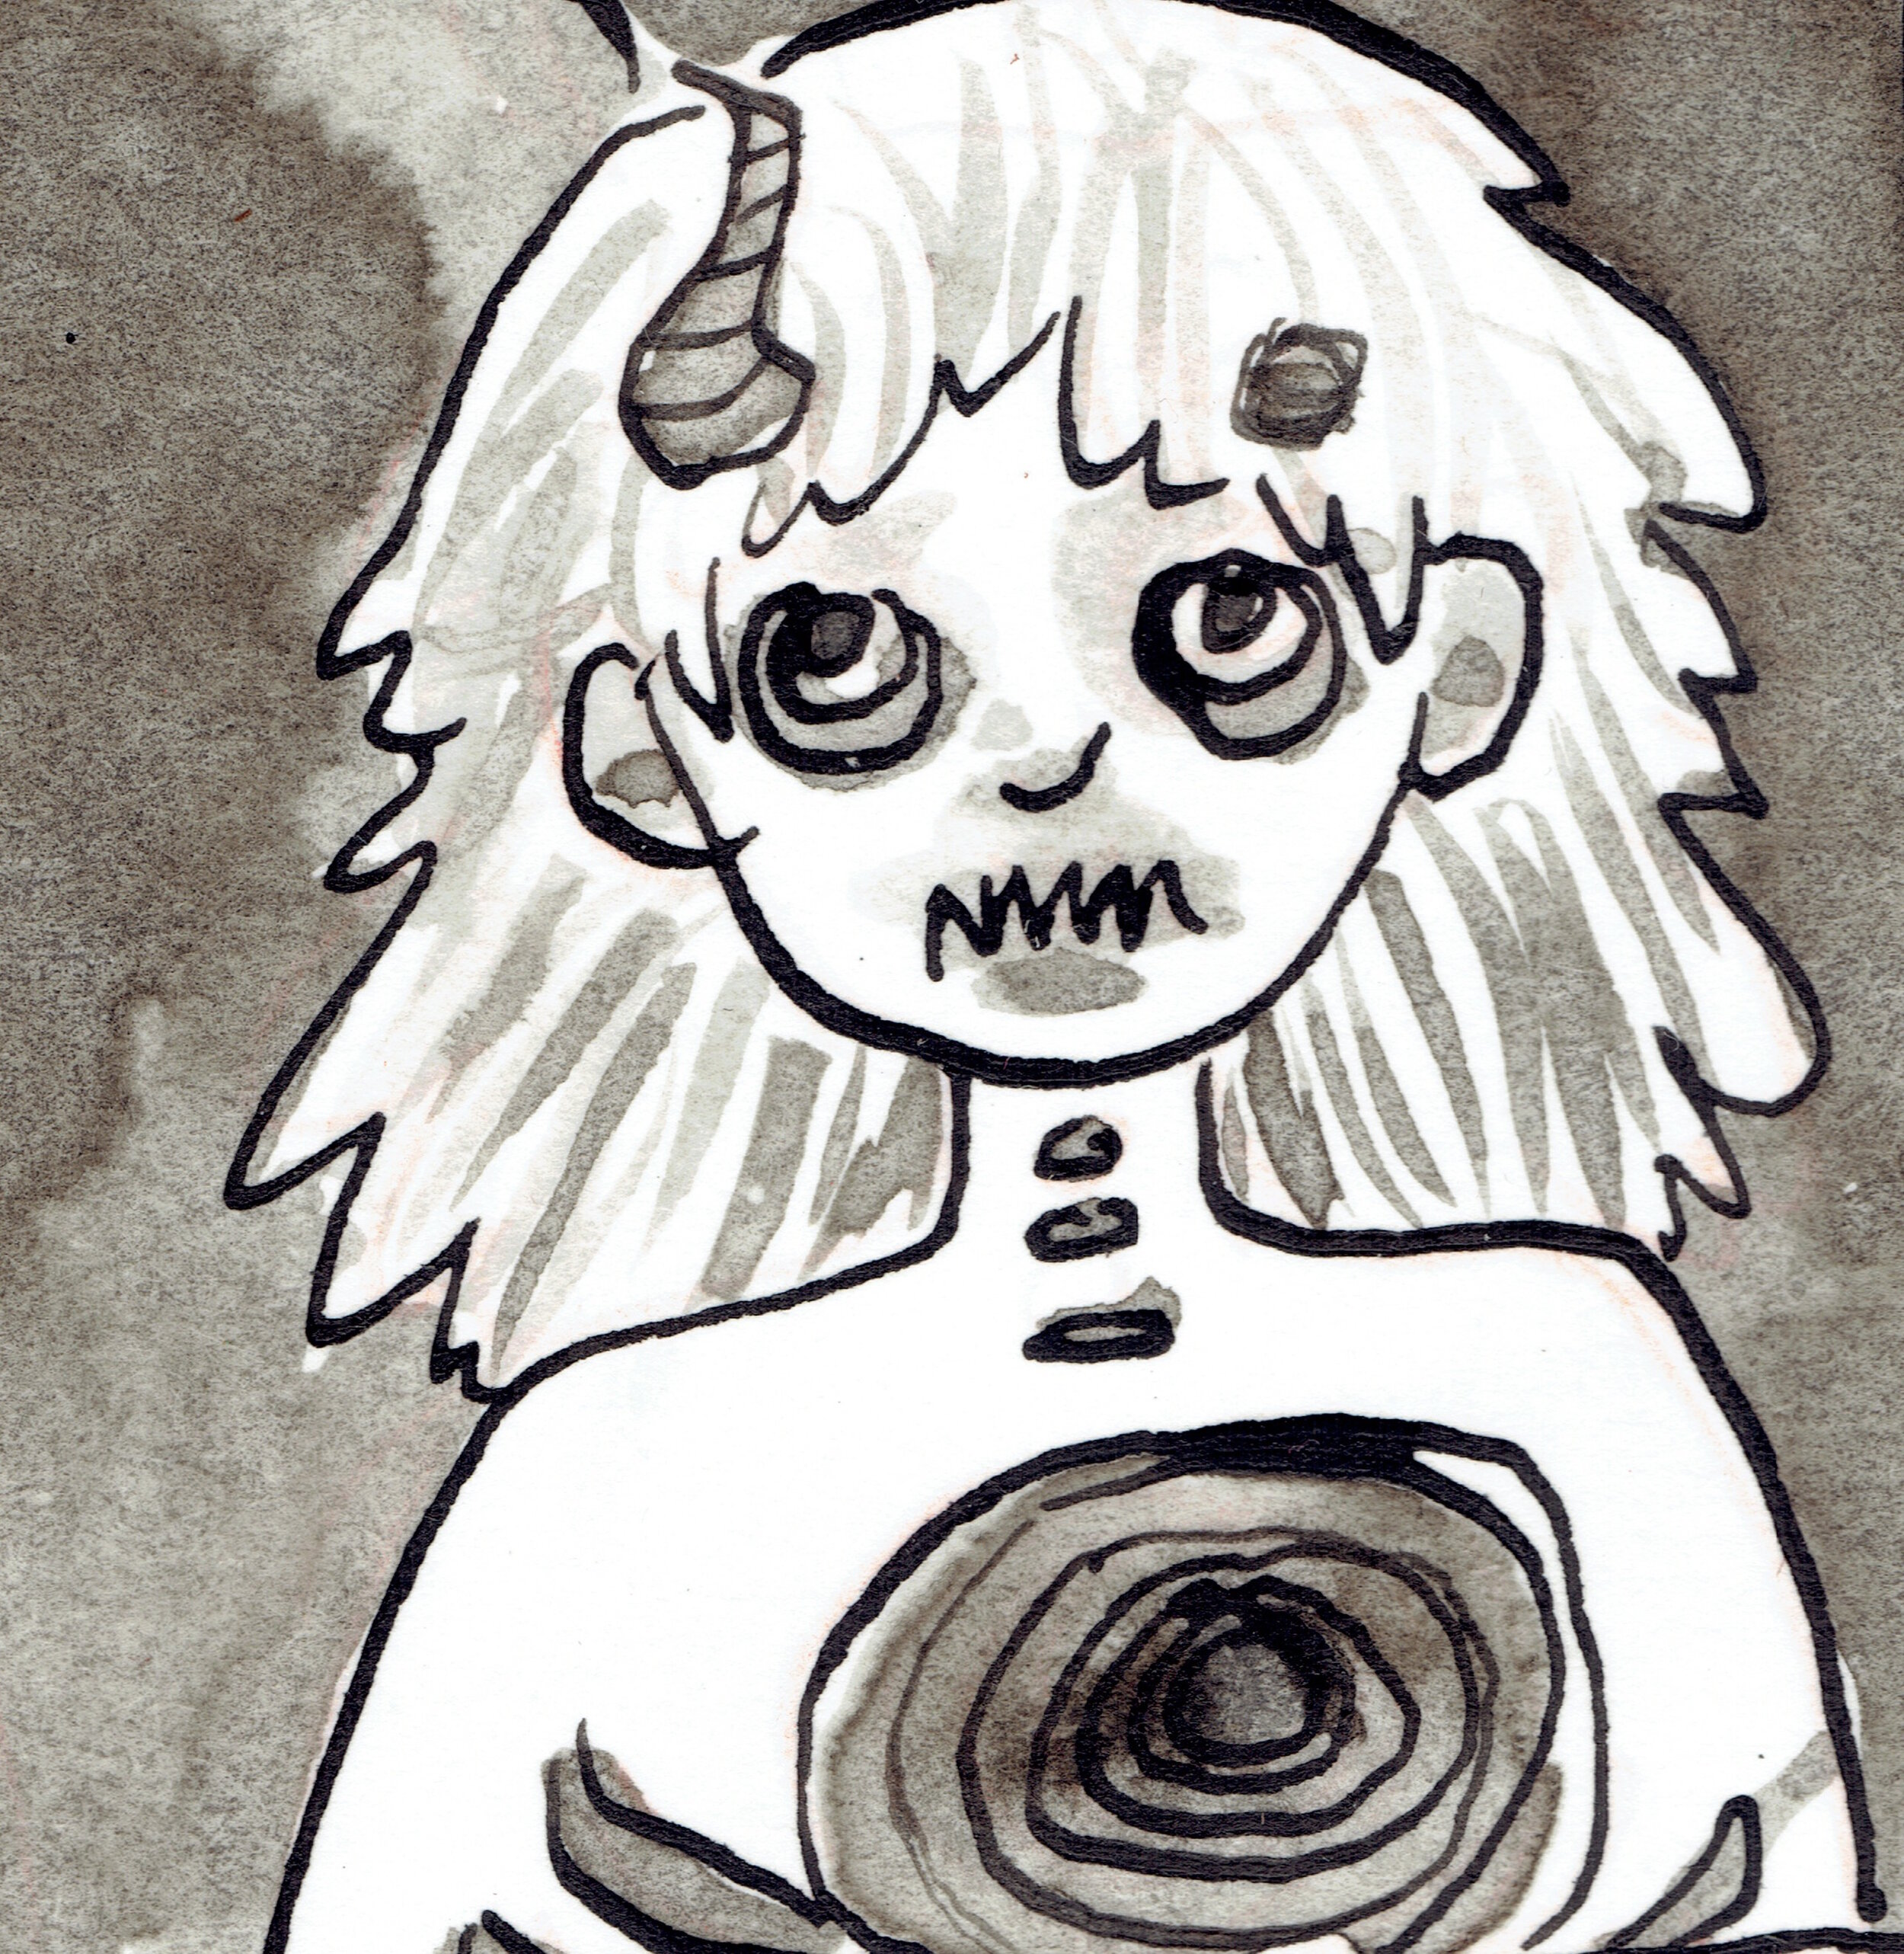 KATHLEEN BERGEN - Contributed 6-page comic to Depression anthology